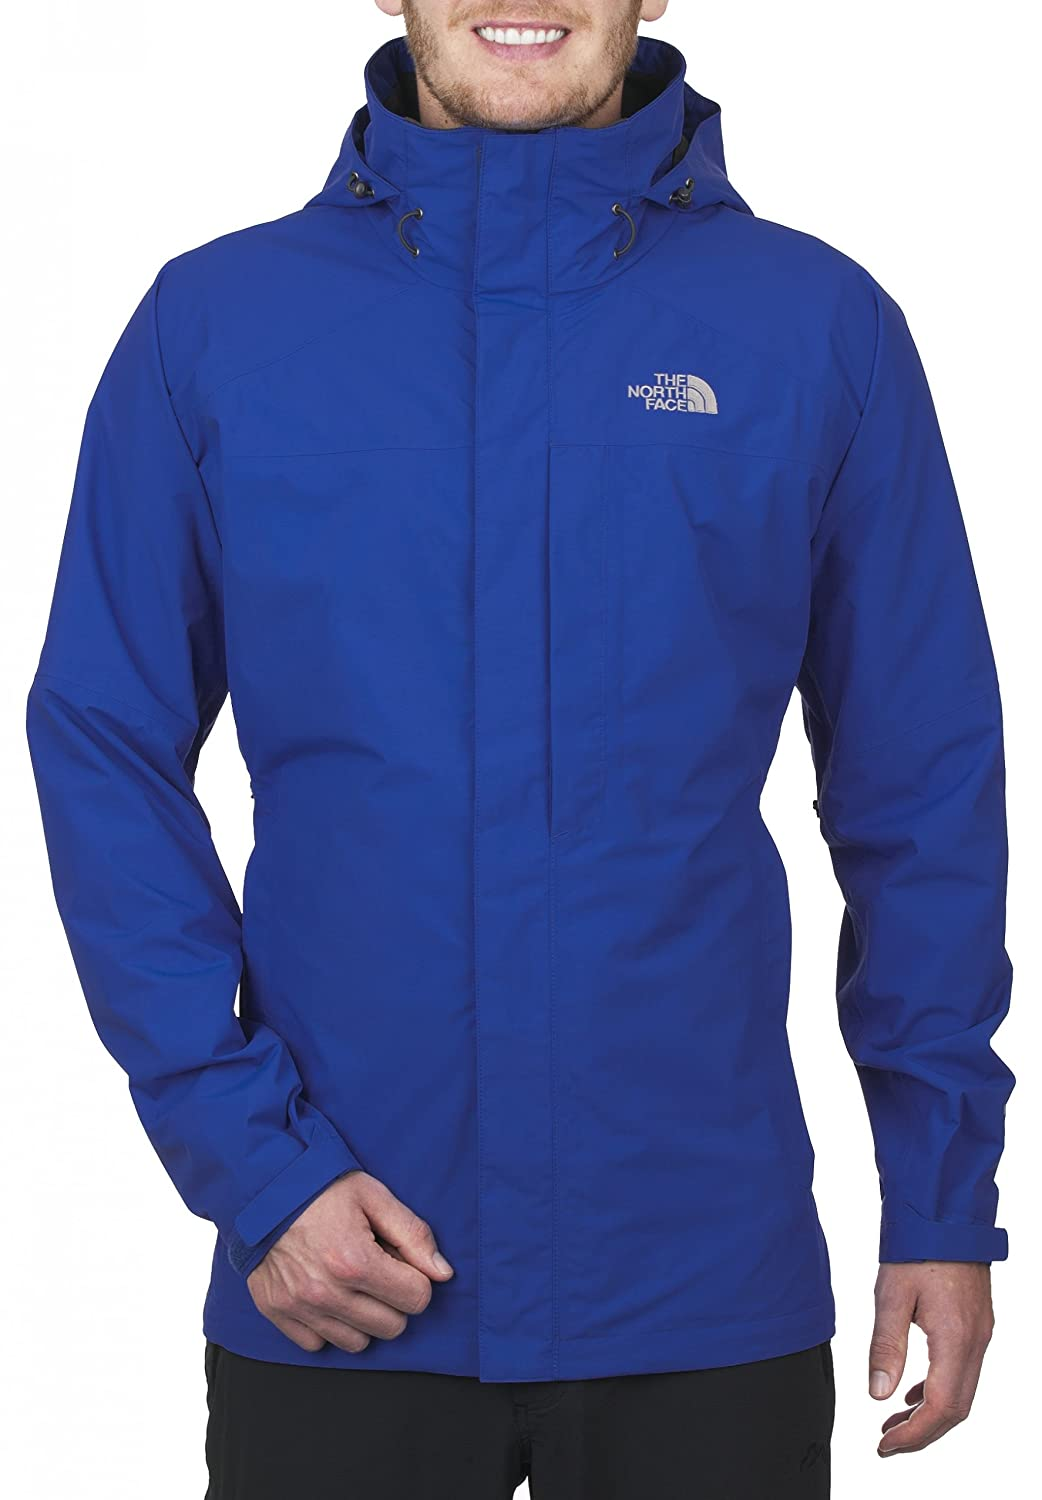 The North Face Regenjacke Men's Cirrus Jacket nautical blue (Größe: XL)